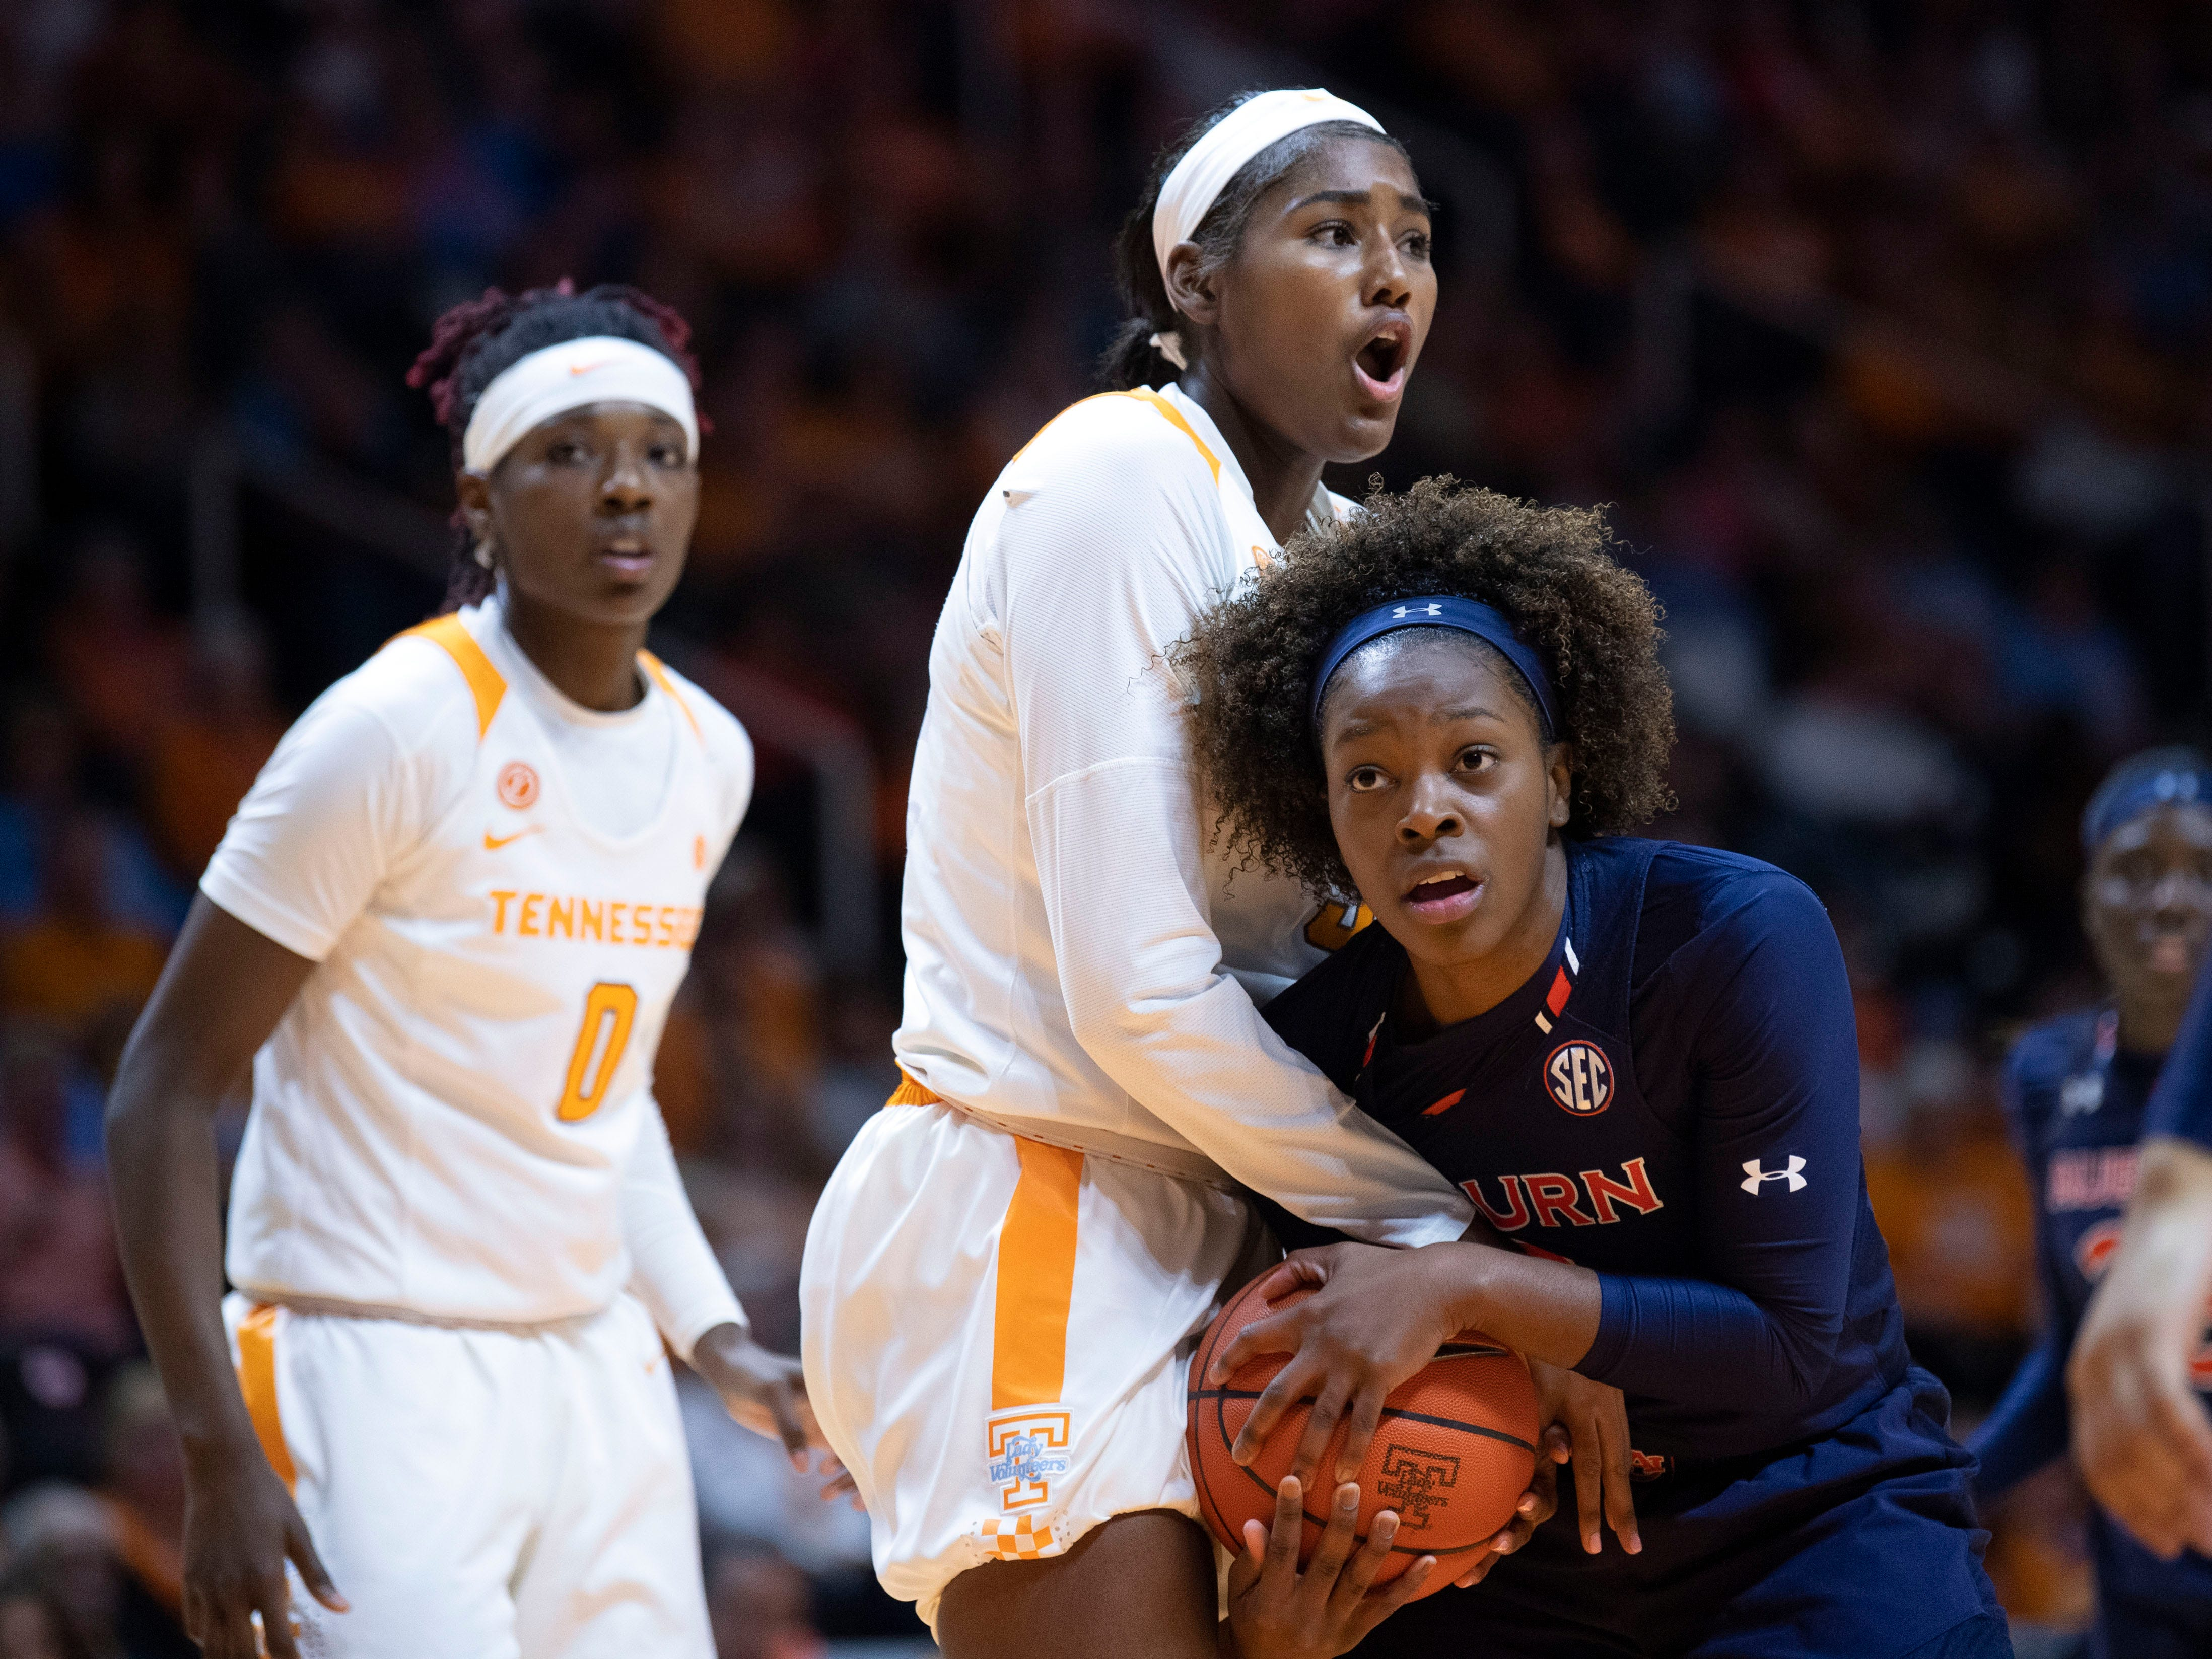 Tennessee's Kamera Harris (5) reacts as Auburn's Erica Sanders (3) is given possession of the ball on Thursday, February 14, 2019.